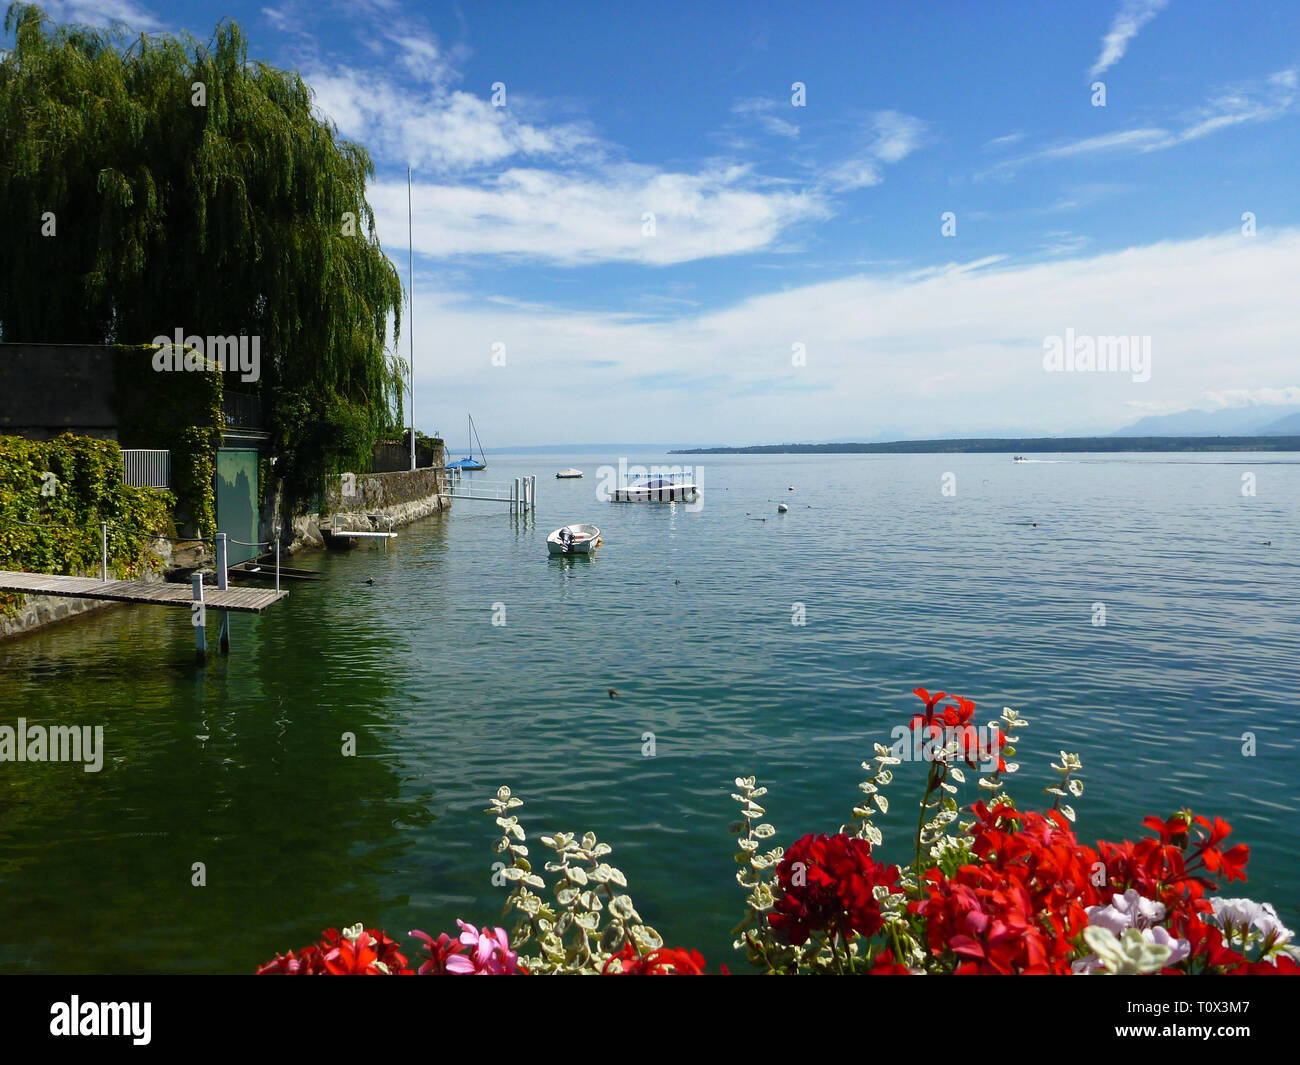 Summer scene on Lake Leman with Geraniums. Boats on the lake - Stock Image